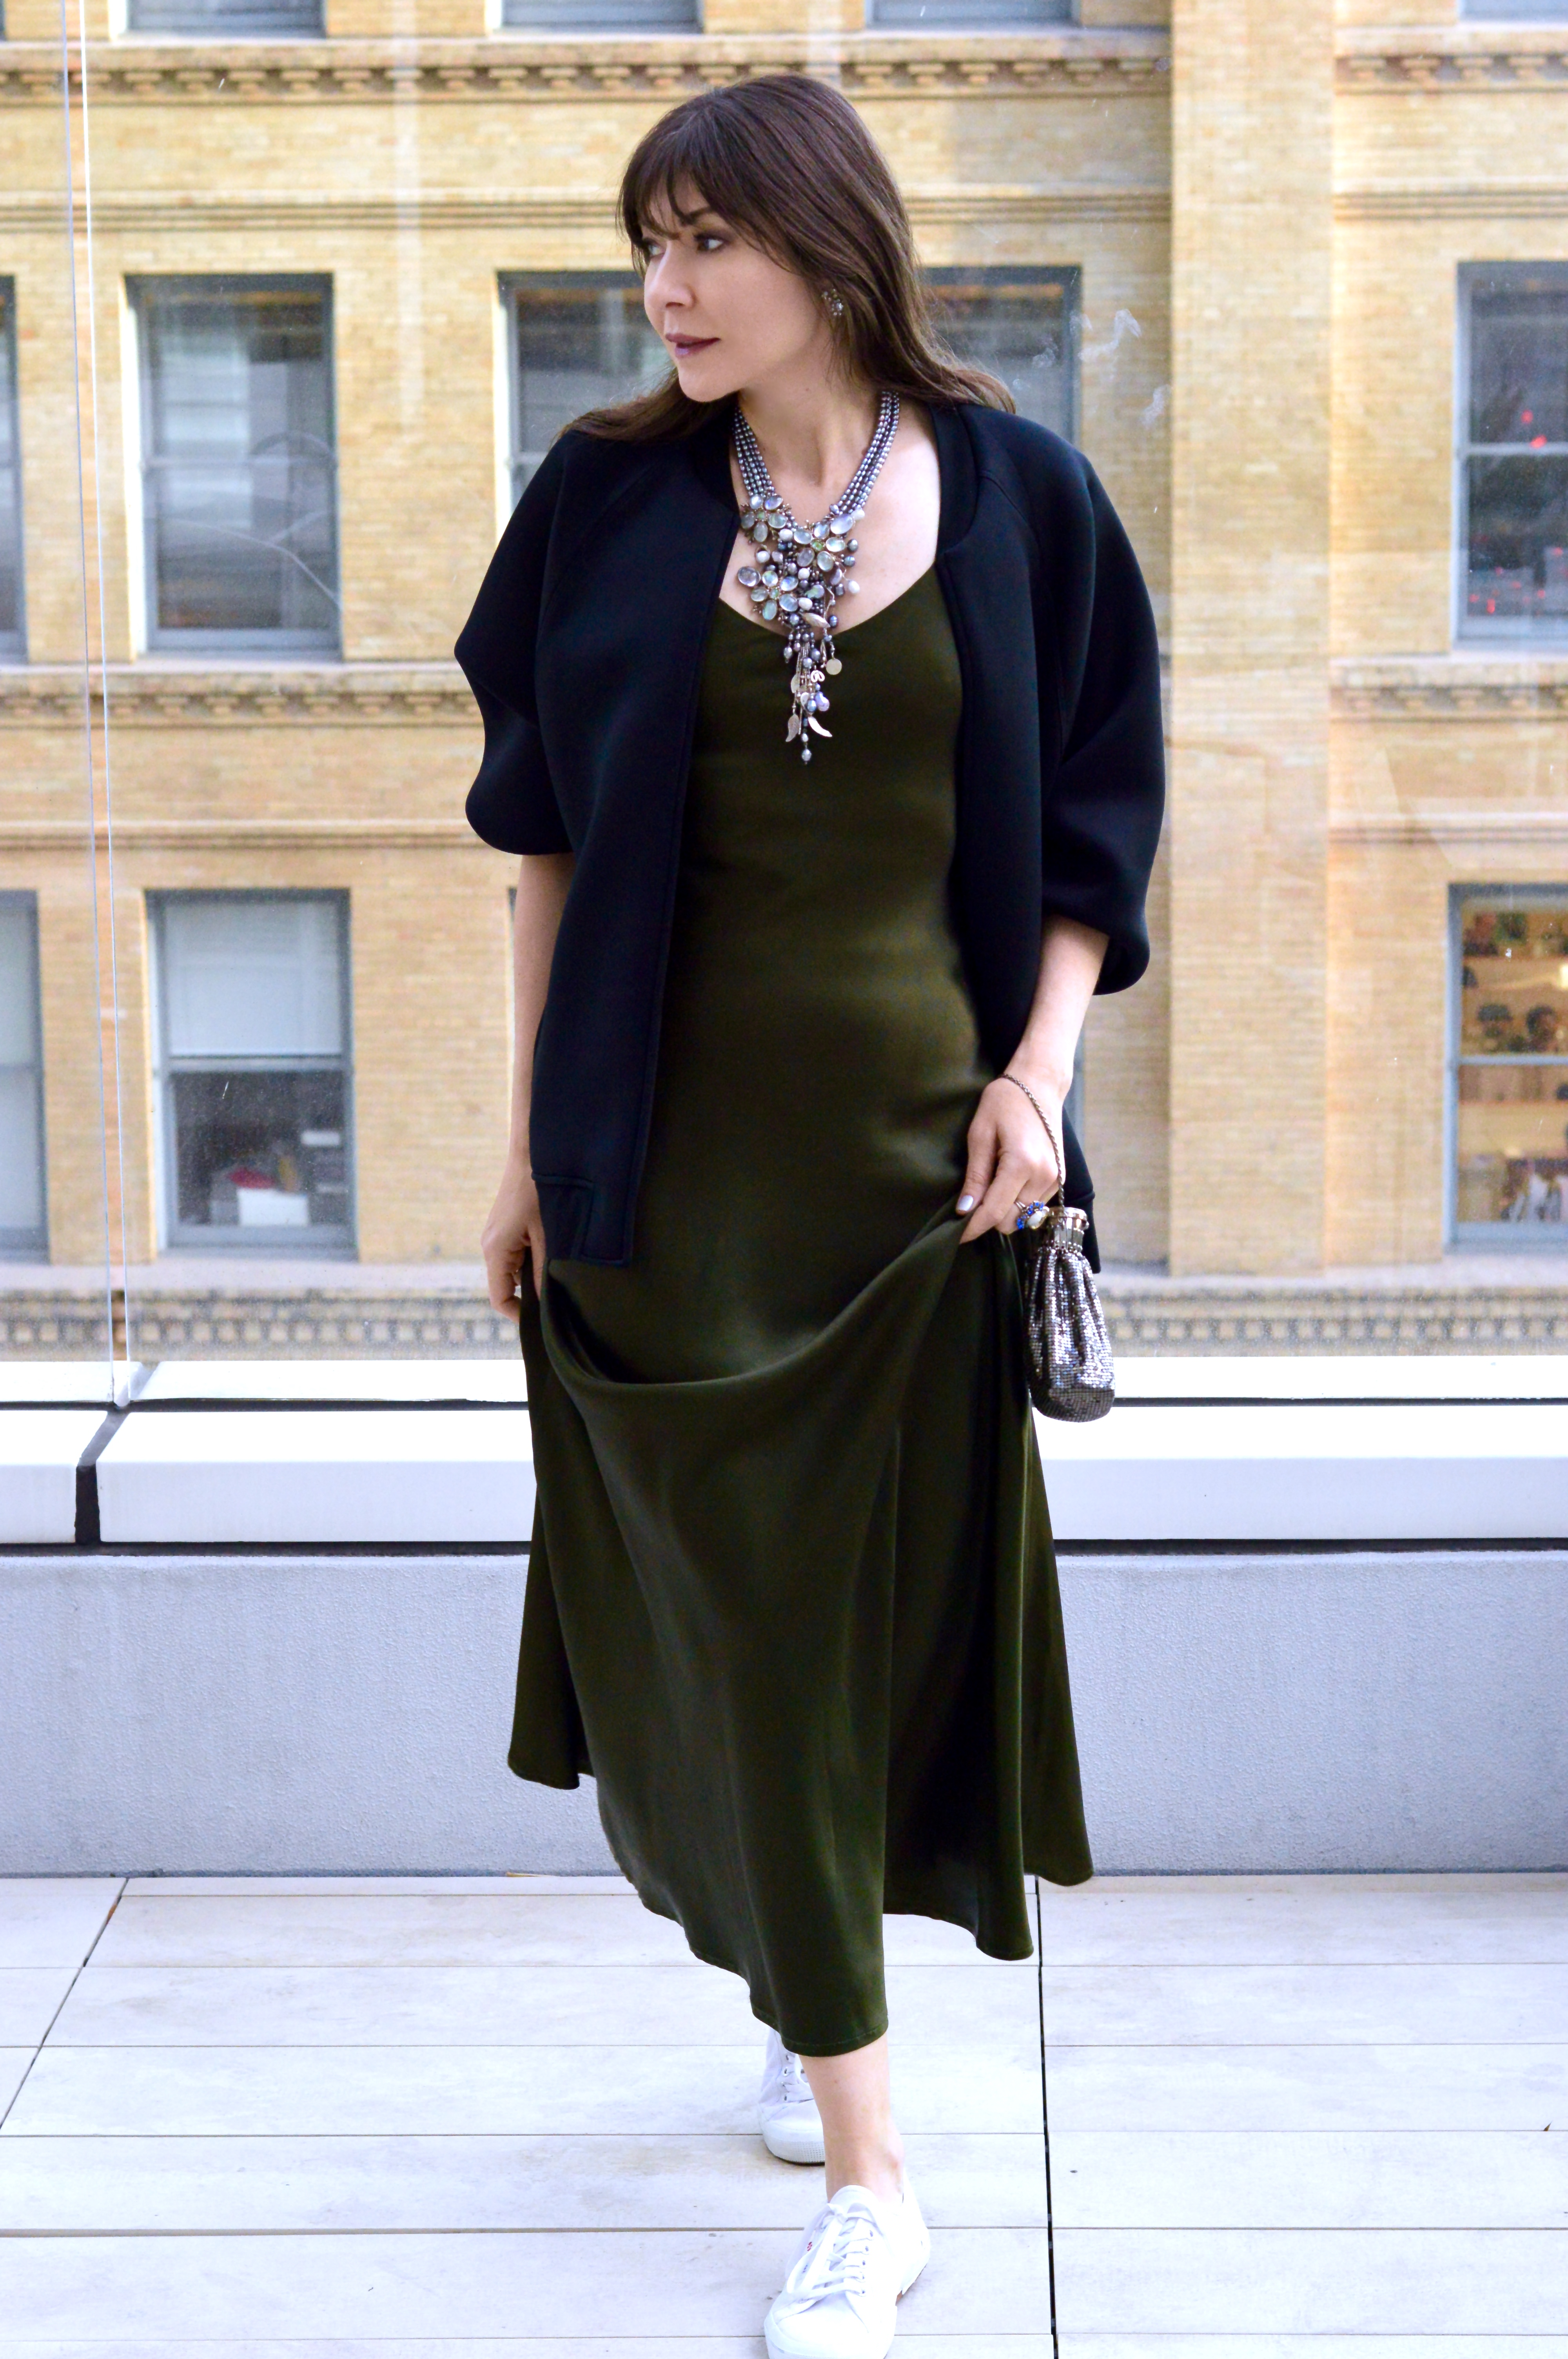 Statement necklace, slip dress and sneaks.